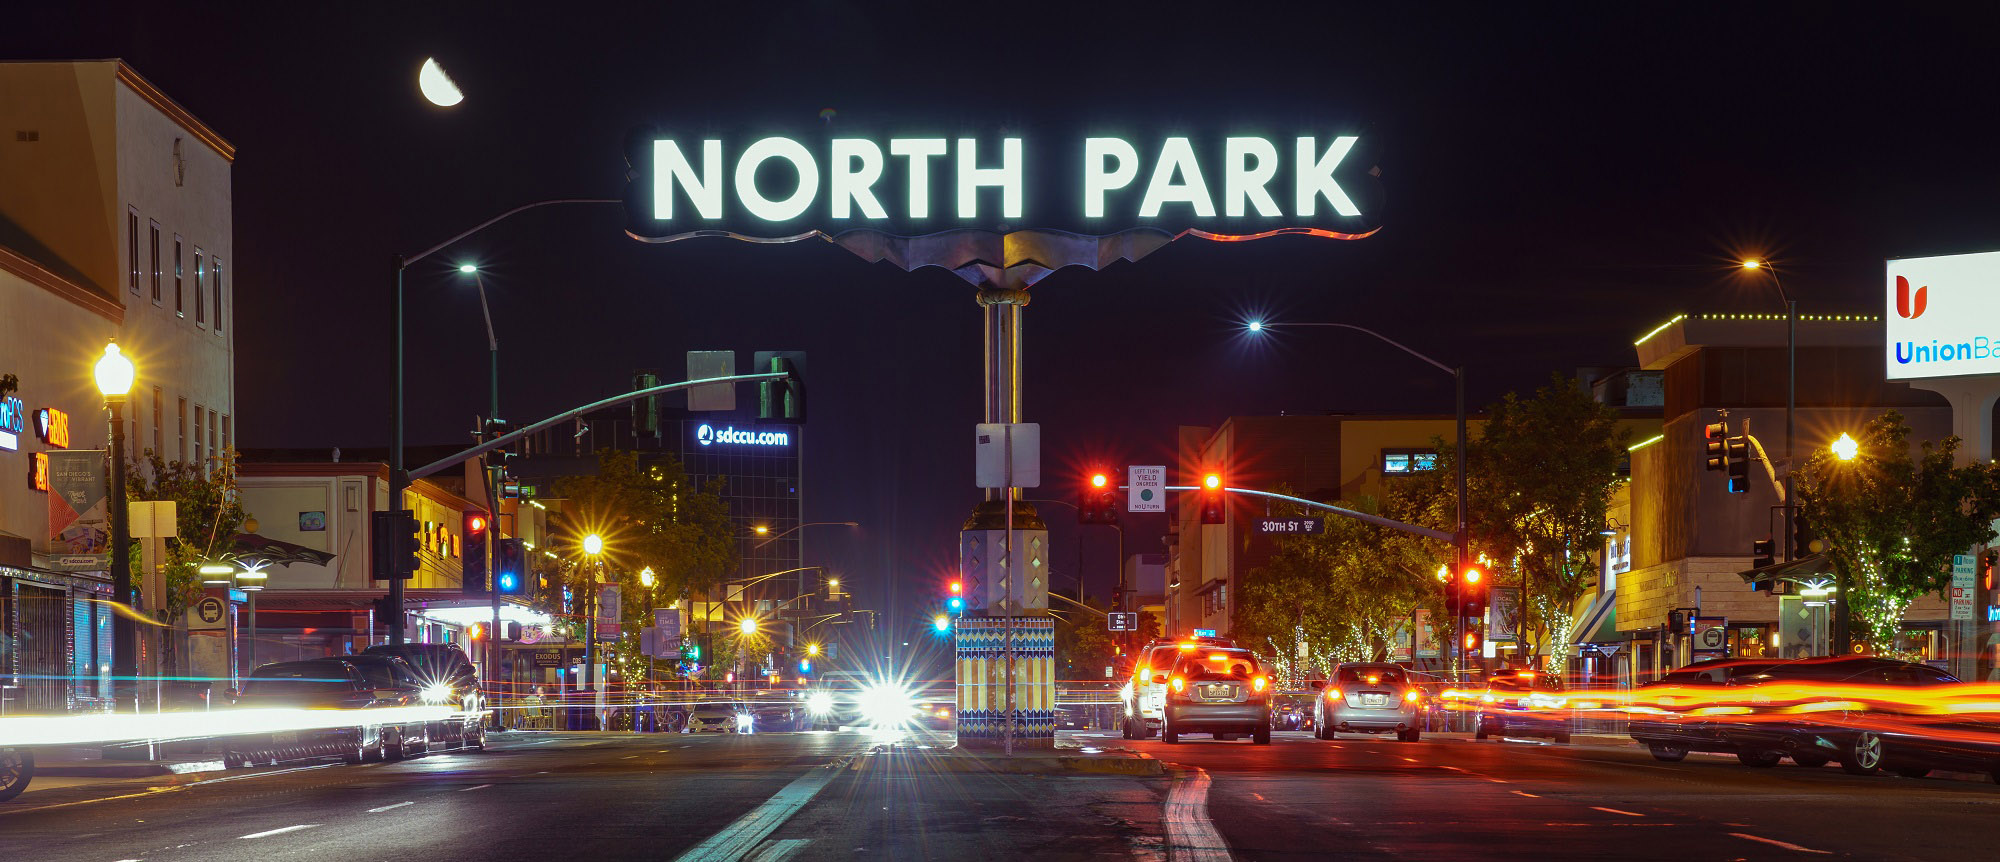 North Park Rental Information